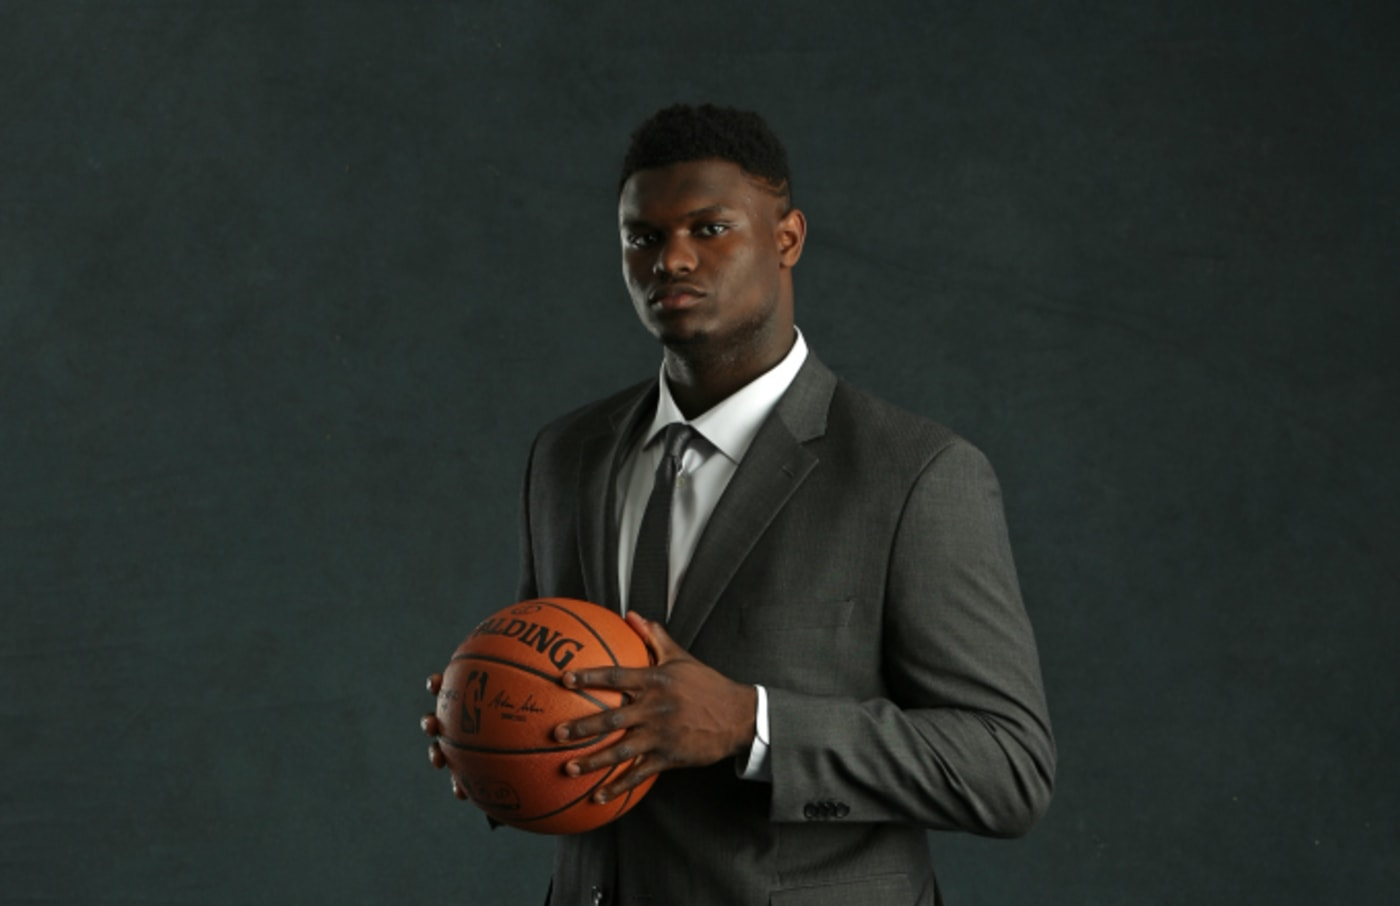 NBA Draft Prospect, Zion Williamson poses for a portrait at the 2019 NBA Draft Lottery